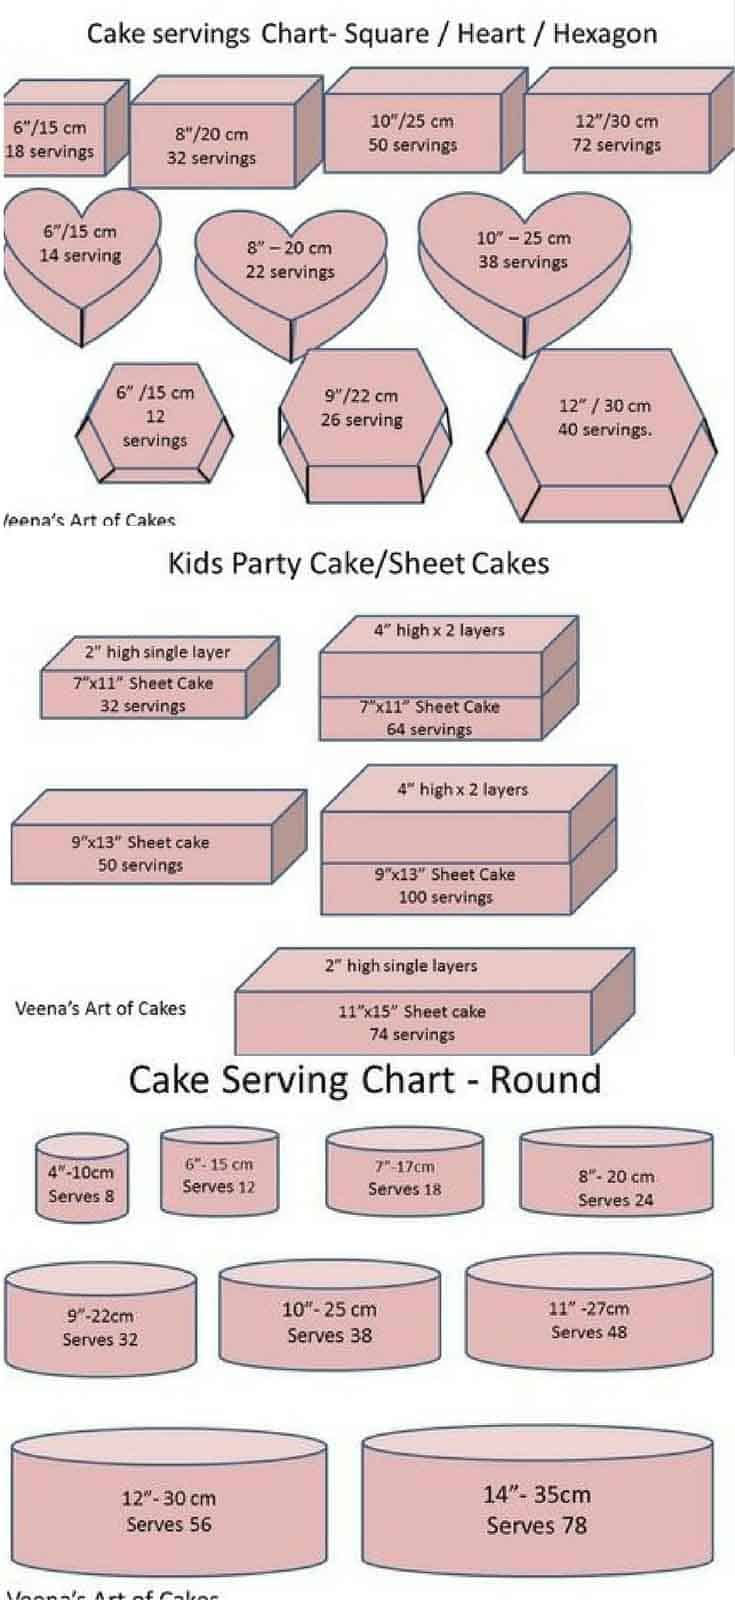 Cake Serving Chart Guide Cake Decorating Basics Veena